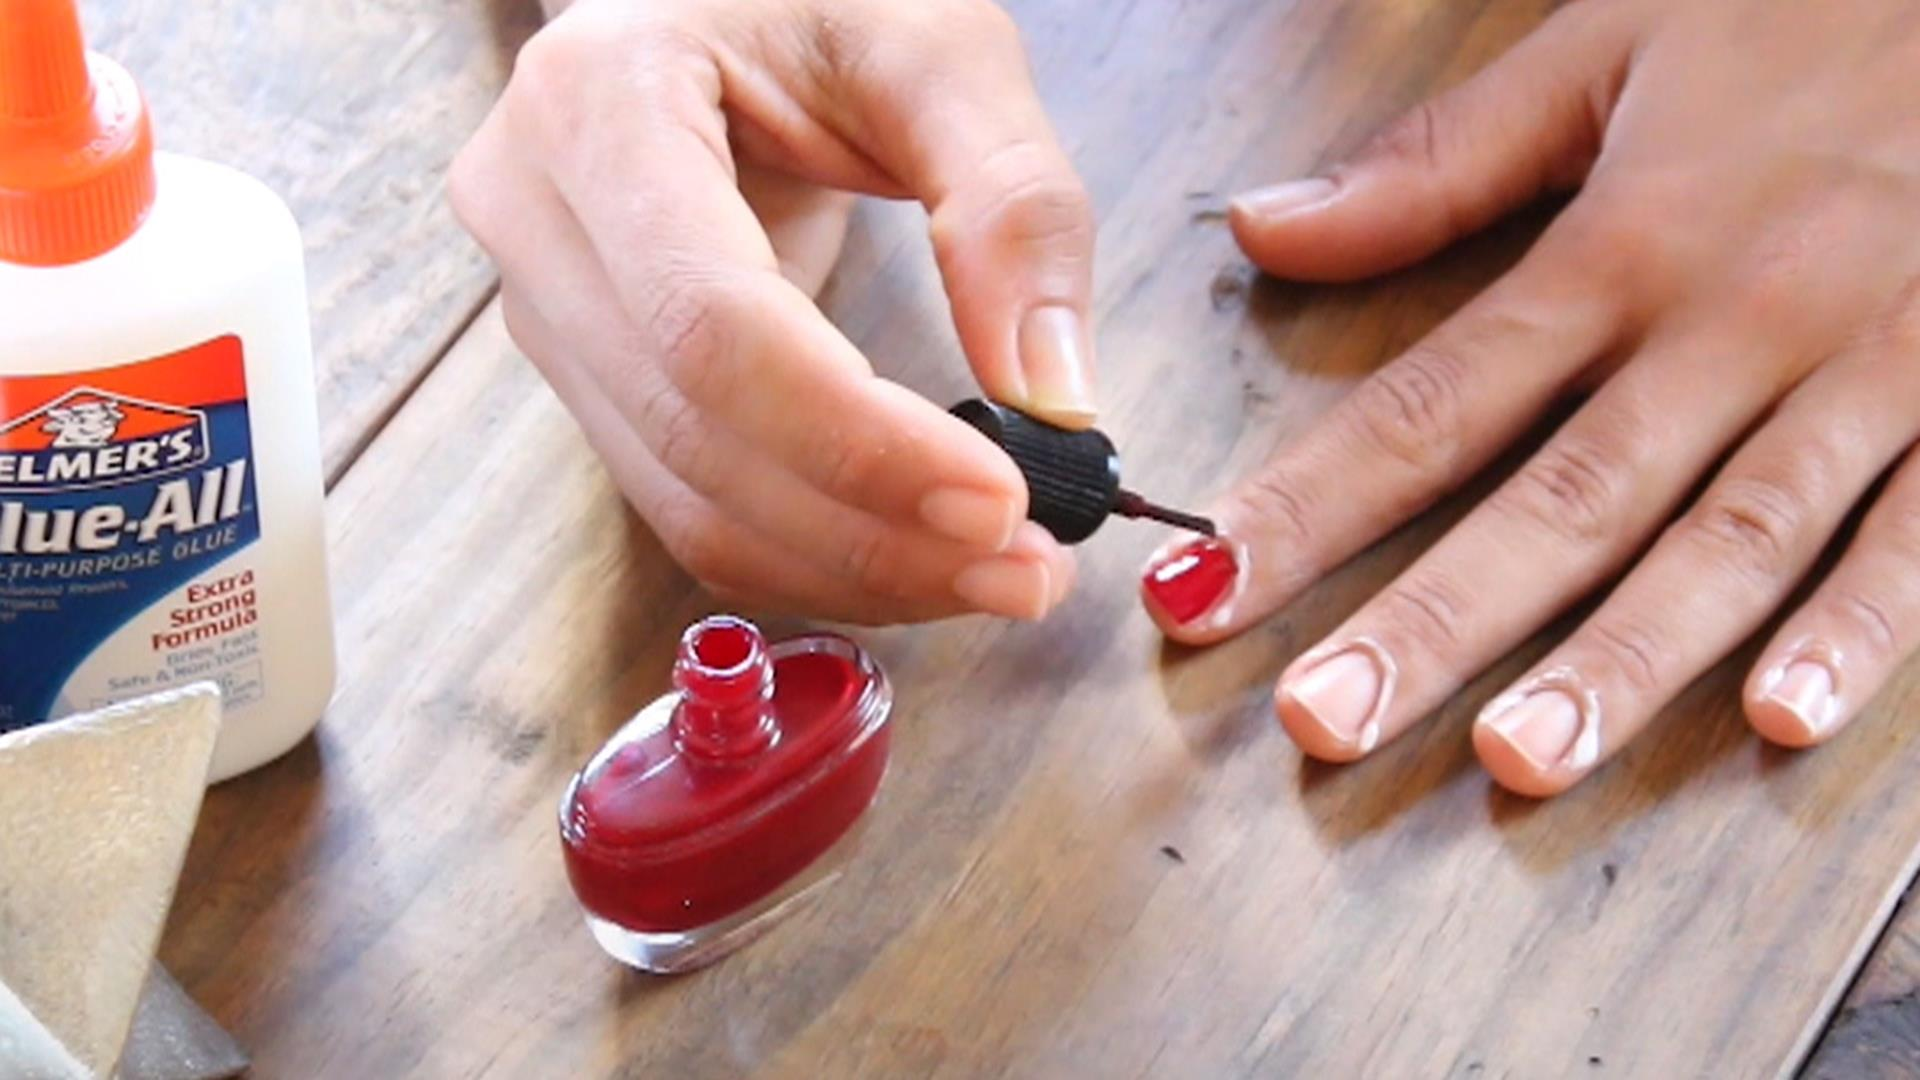 This Elmers Glue Manicure Trick Will Prevent The Mess